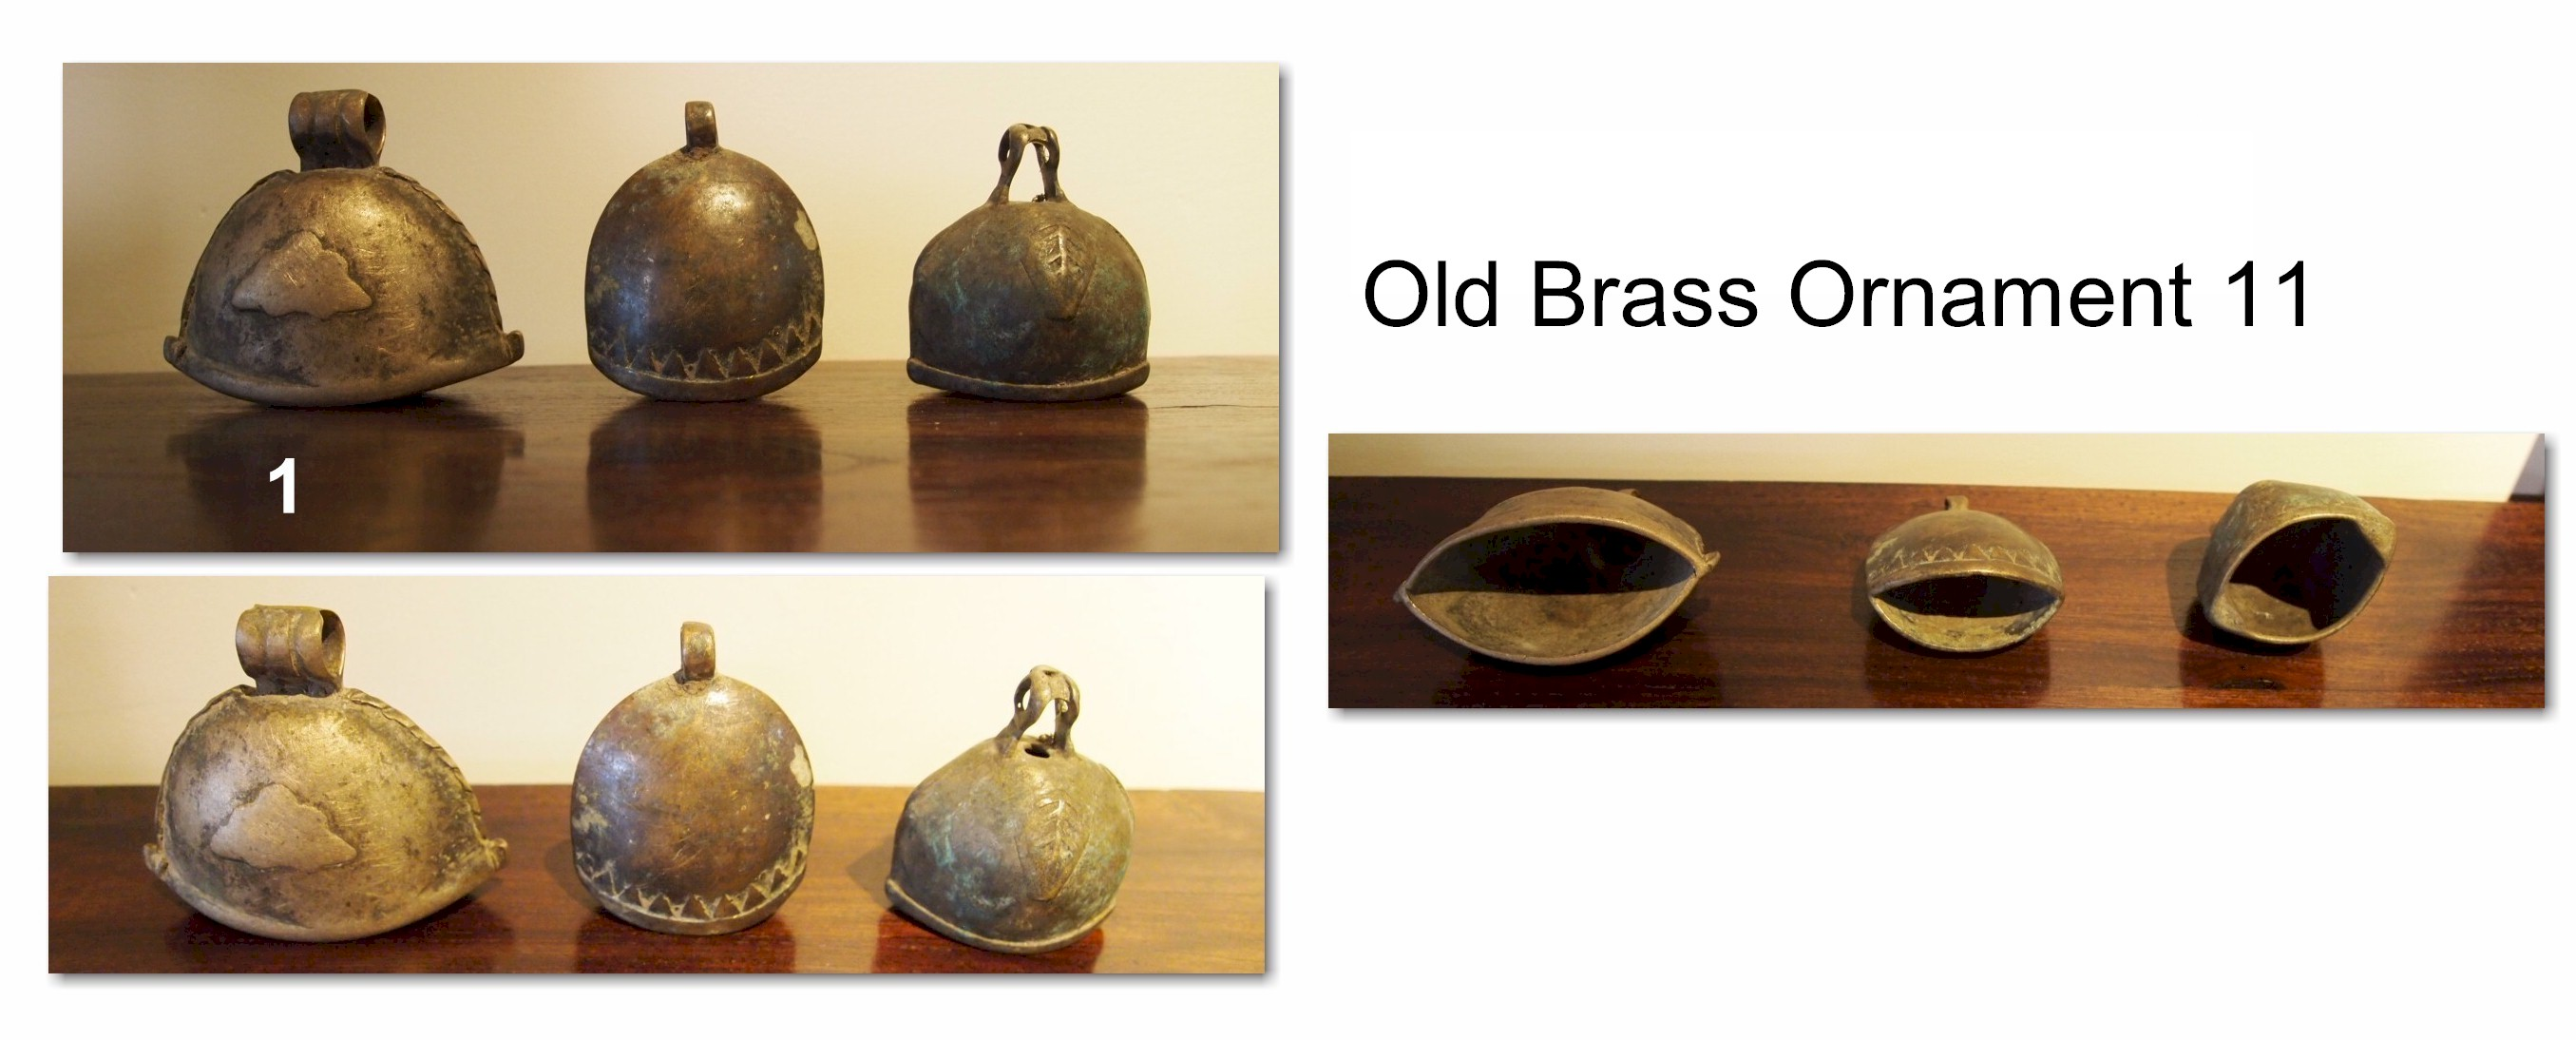 Old Brass Ornament 11